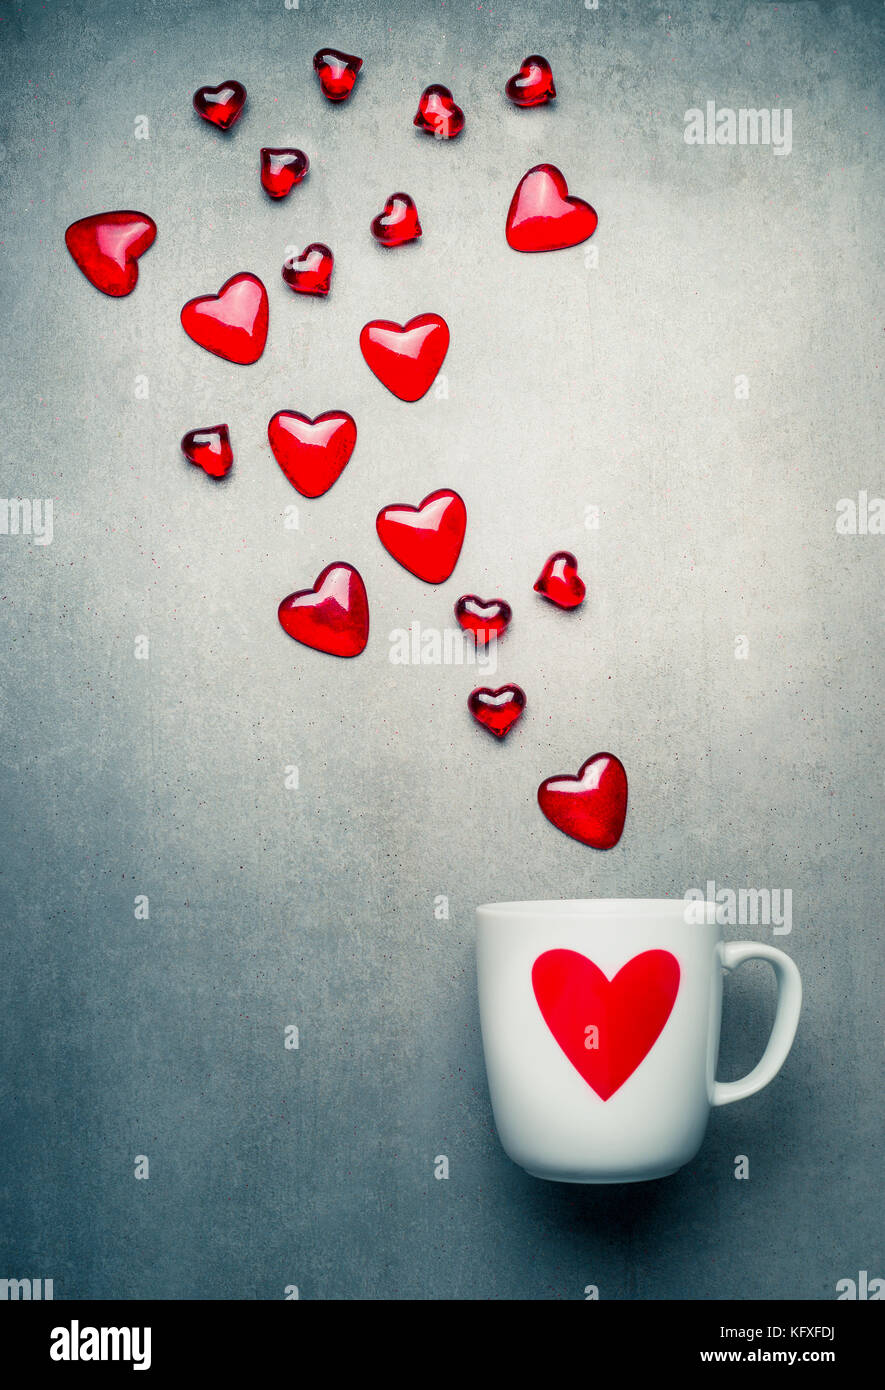 White Mug With Red Heart And Flying Glass Hearts Love Symbols And